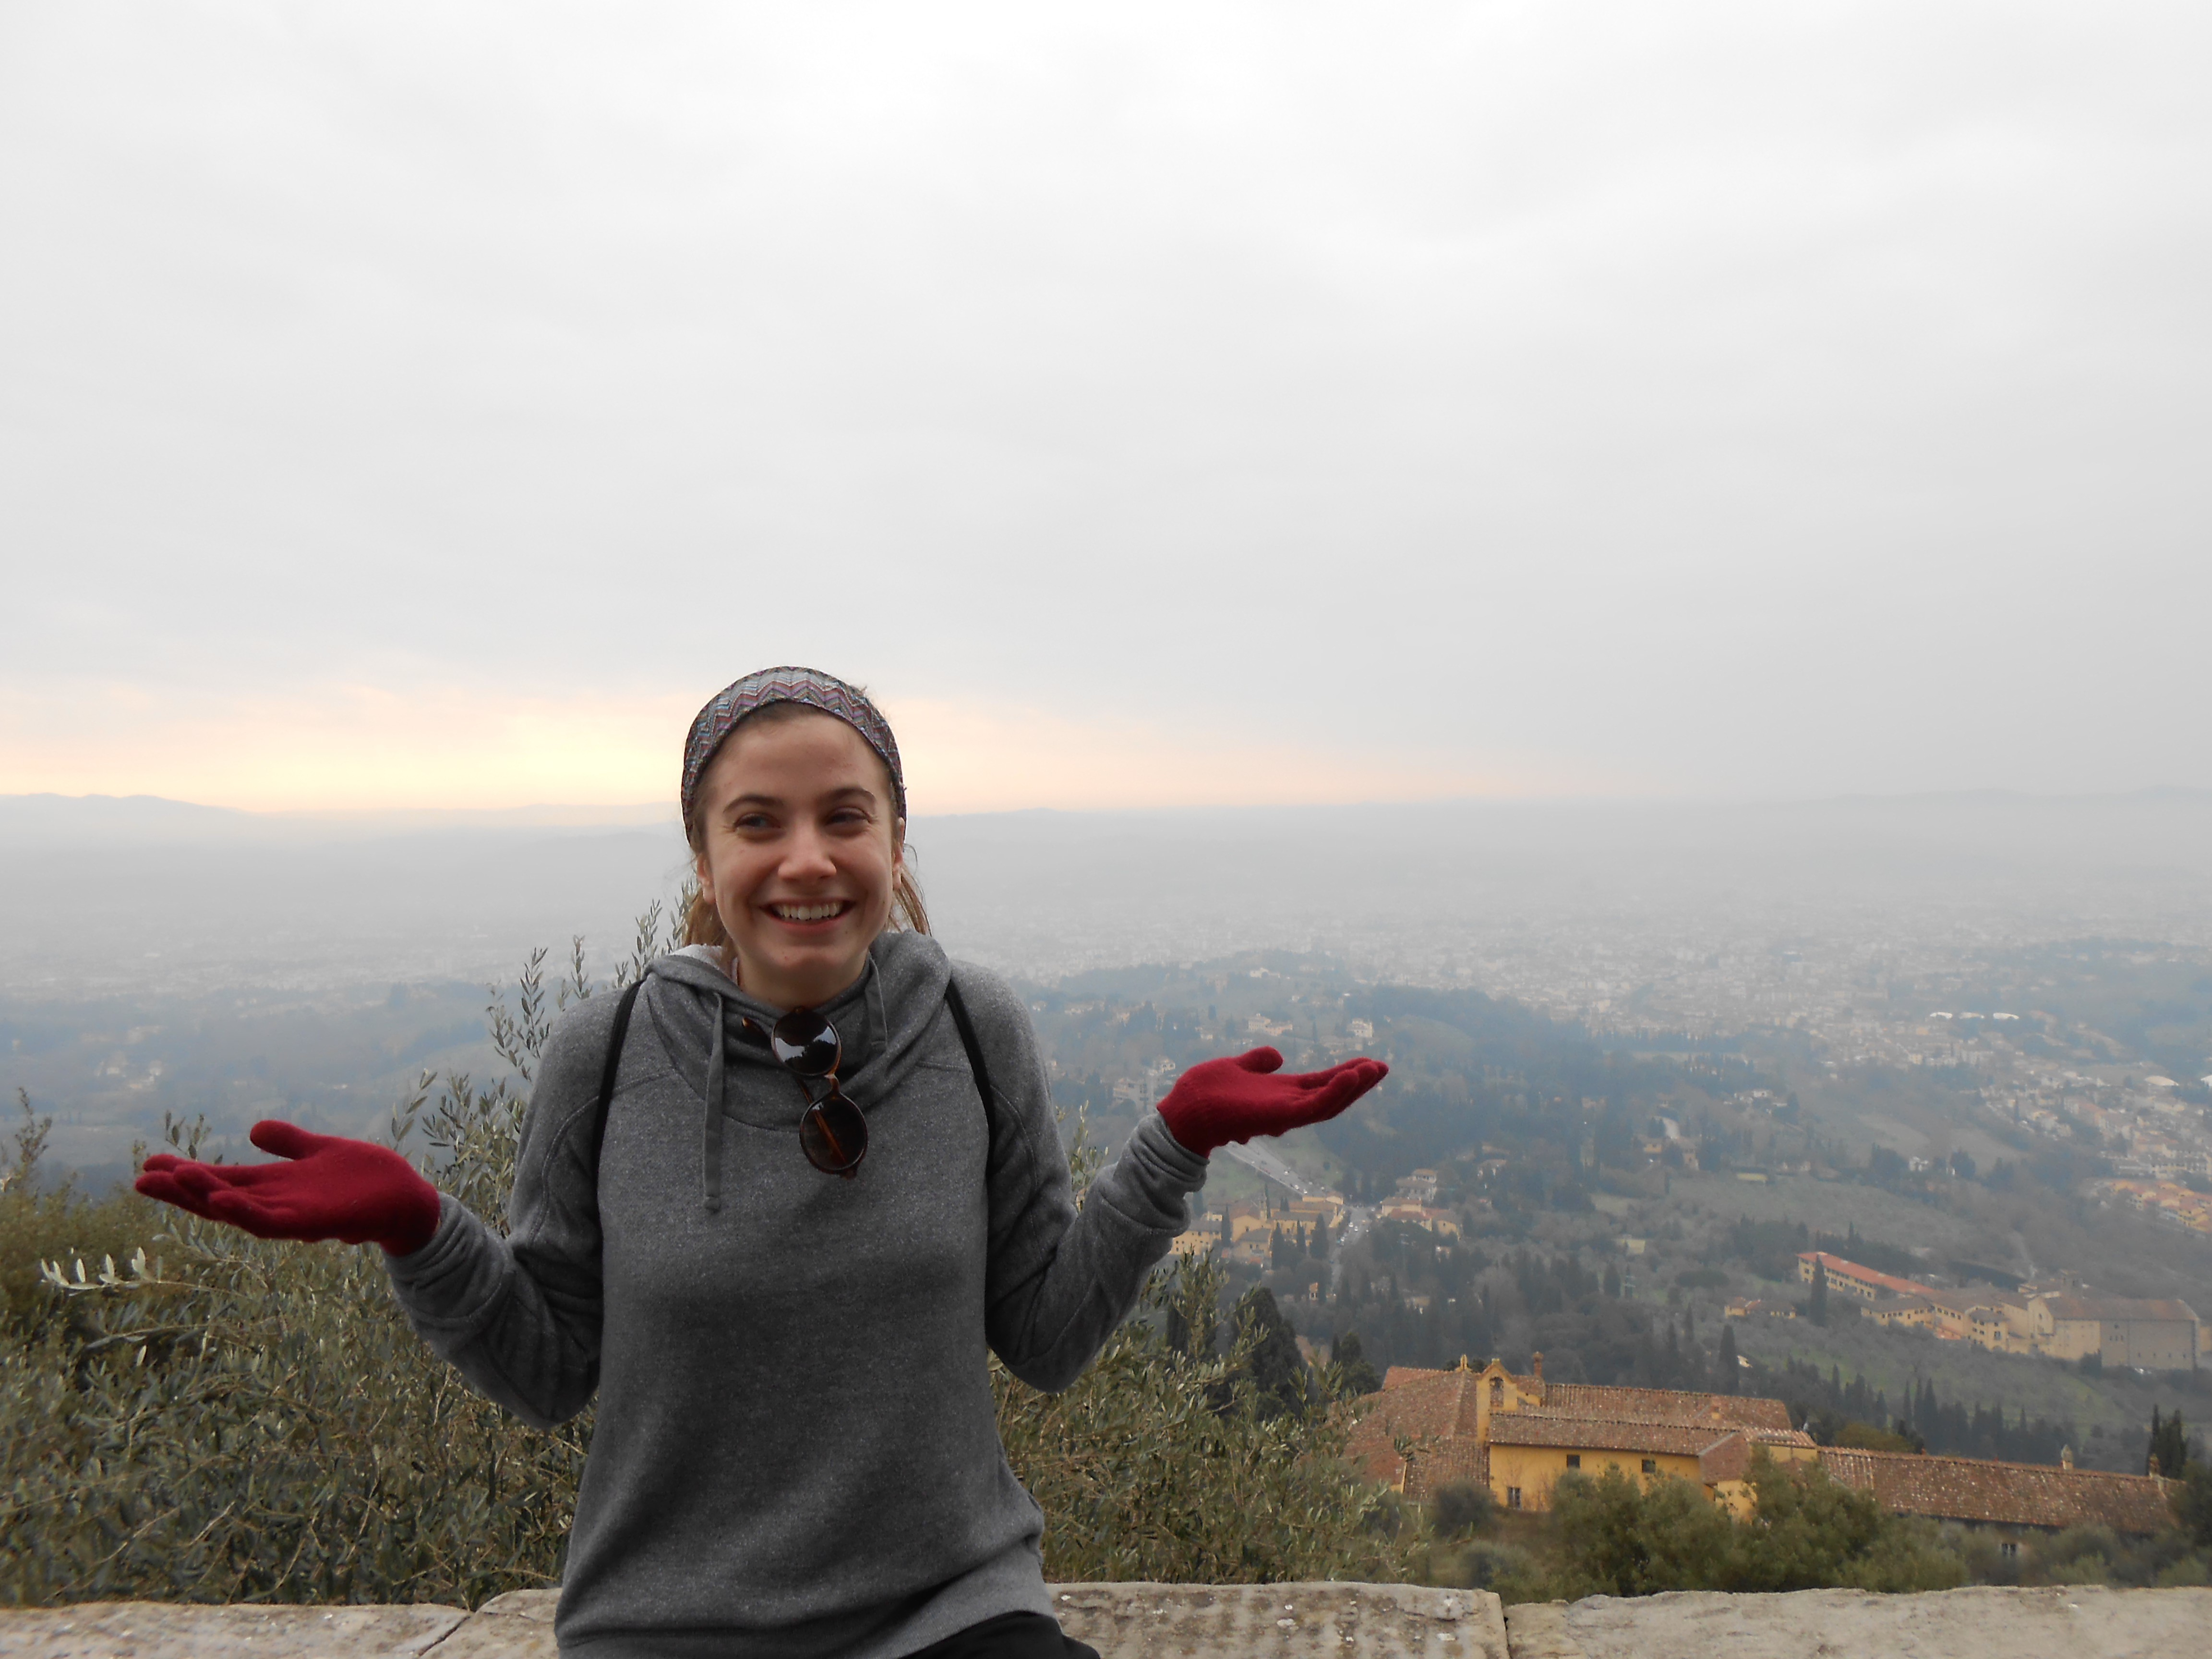 CAPAStudyAbroad_Florence_Spring2016_From_Franchessa_Bianconi.jpg